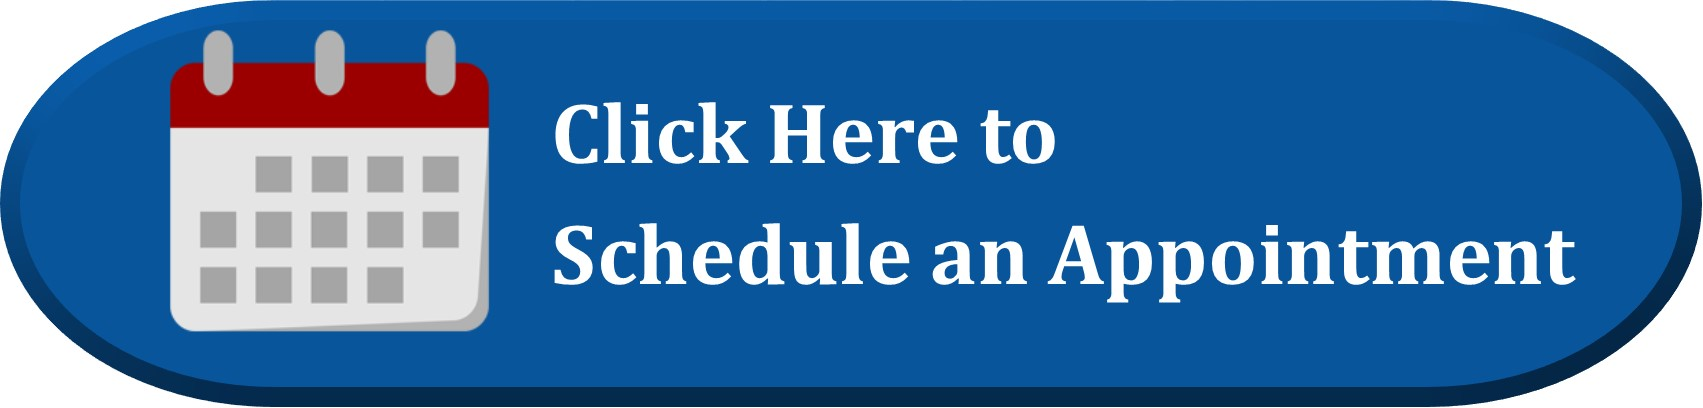 click to schedule